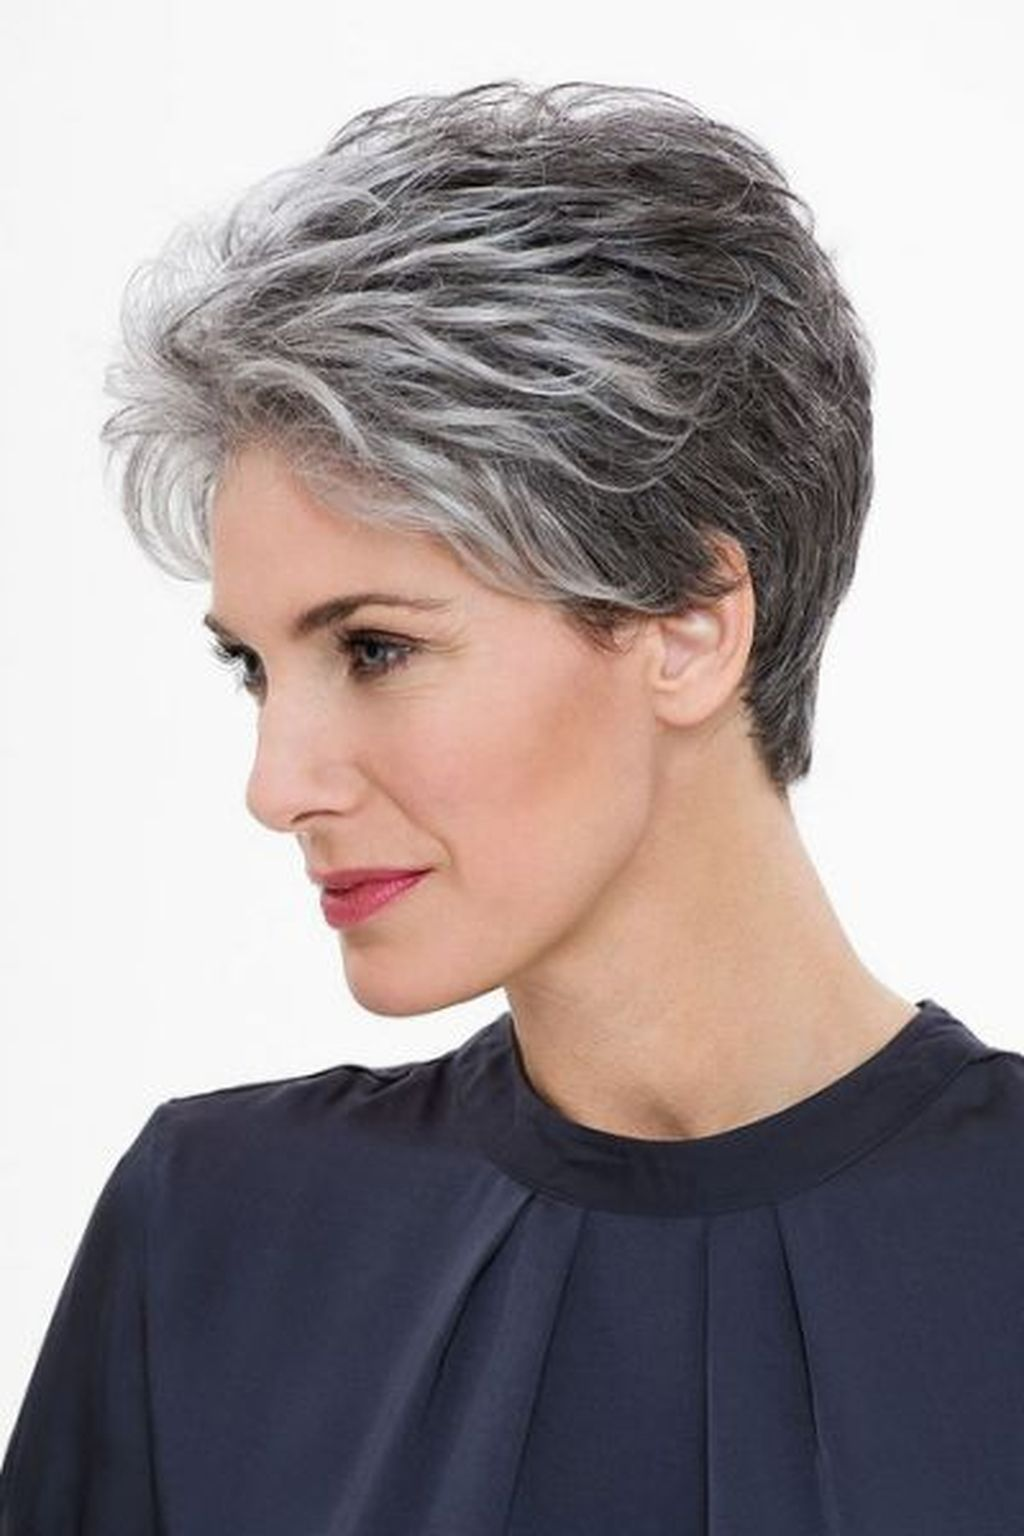 44 Cute Short Hairstyles Ideas For Women Over 50 Addicfashion In 2020 Short Hair Styles Short Grey Hair Hair Styles For Women Over 50